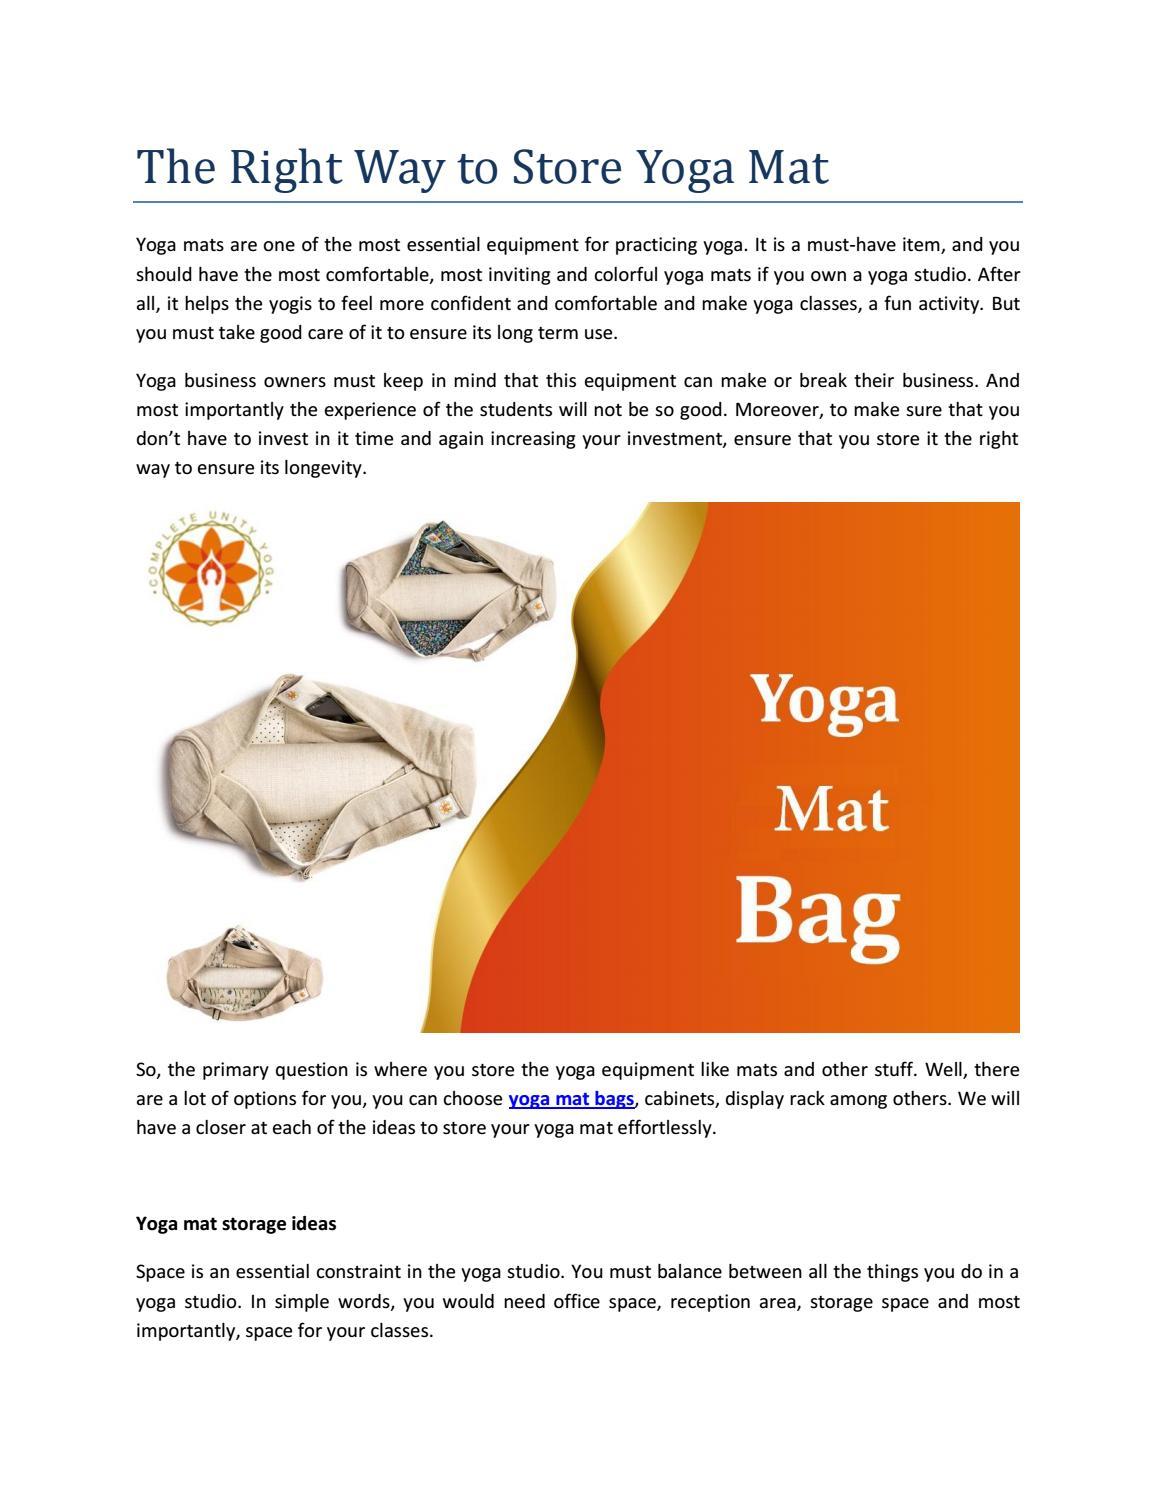 The Right Way To Store Yoga Mat By Complete Unity Yoga Issuu